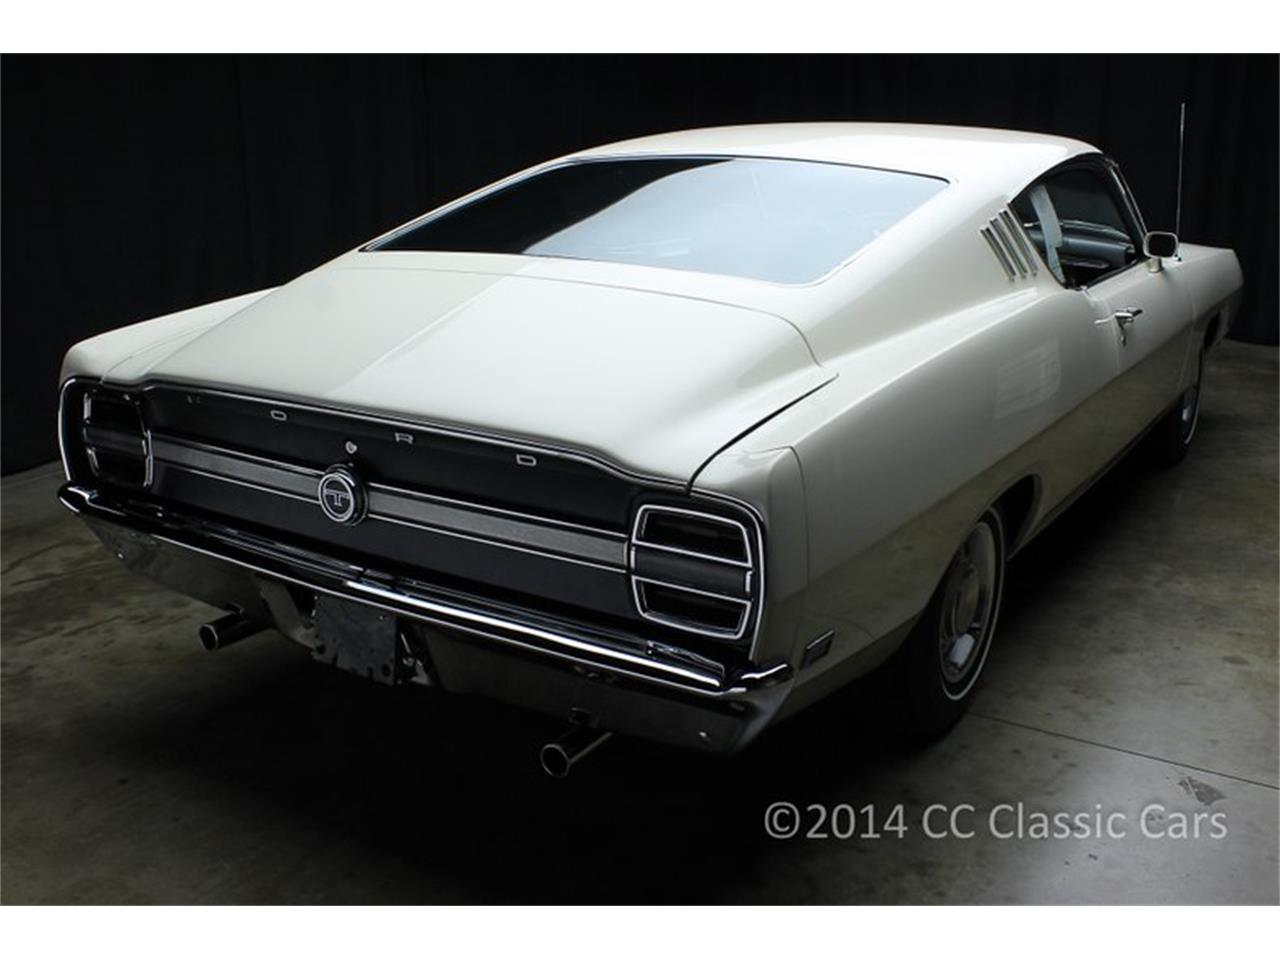 Large Picture of '69 Ford Torino located in West Chester Pennsylvania Offered by CC Classic Cars - HZ0H